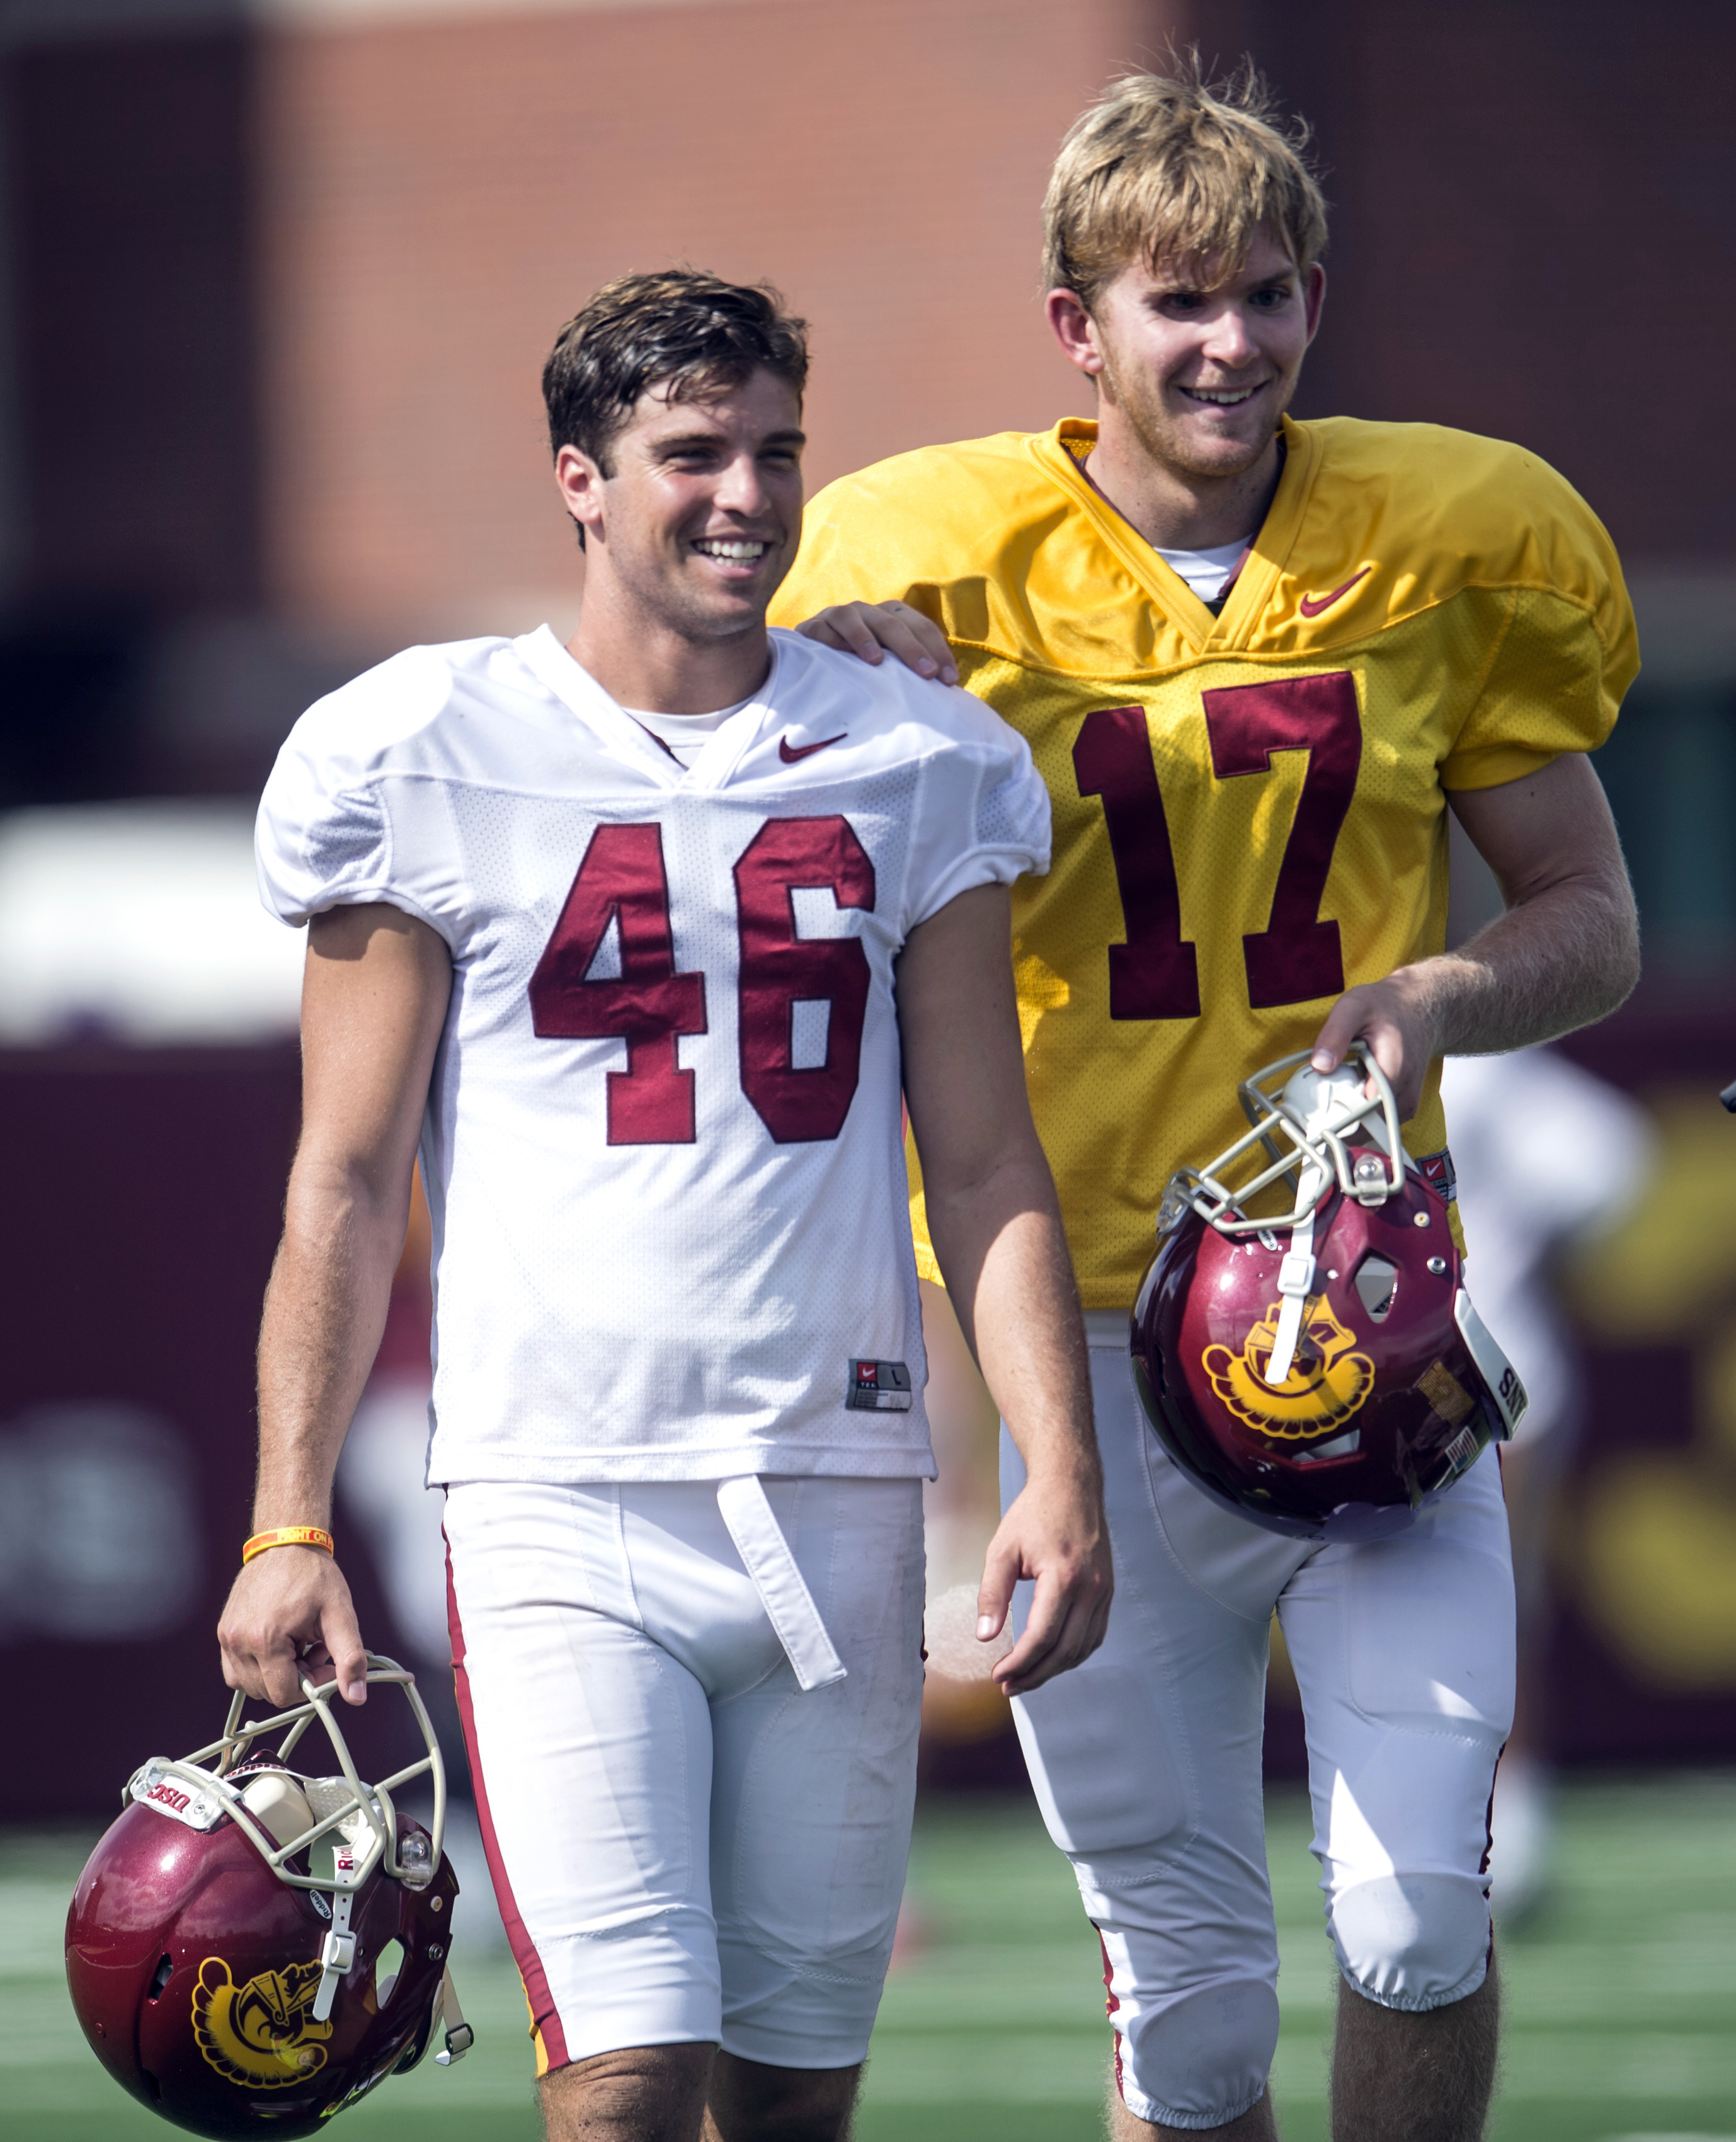 FILE - In this Sept. 15, 2015, file photo, Jake Olson, right, is guided on the field by Southern California teammate Reid Budrovich during NCAA college football practice at USC Los Angeles. On Saturday, Sept. 19, 2015, Olson stood with his USC teammates o